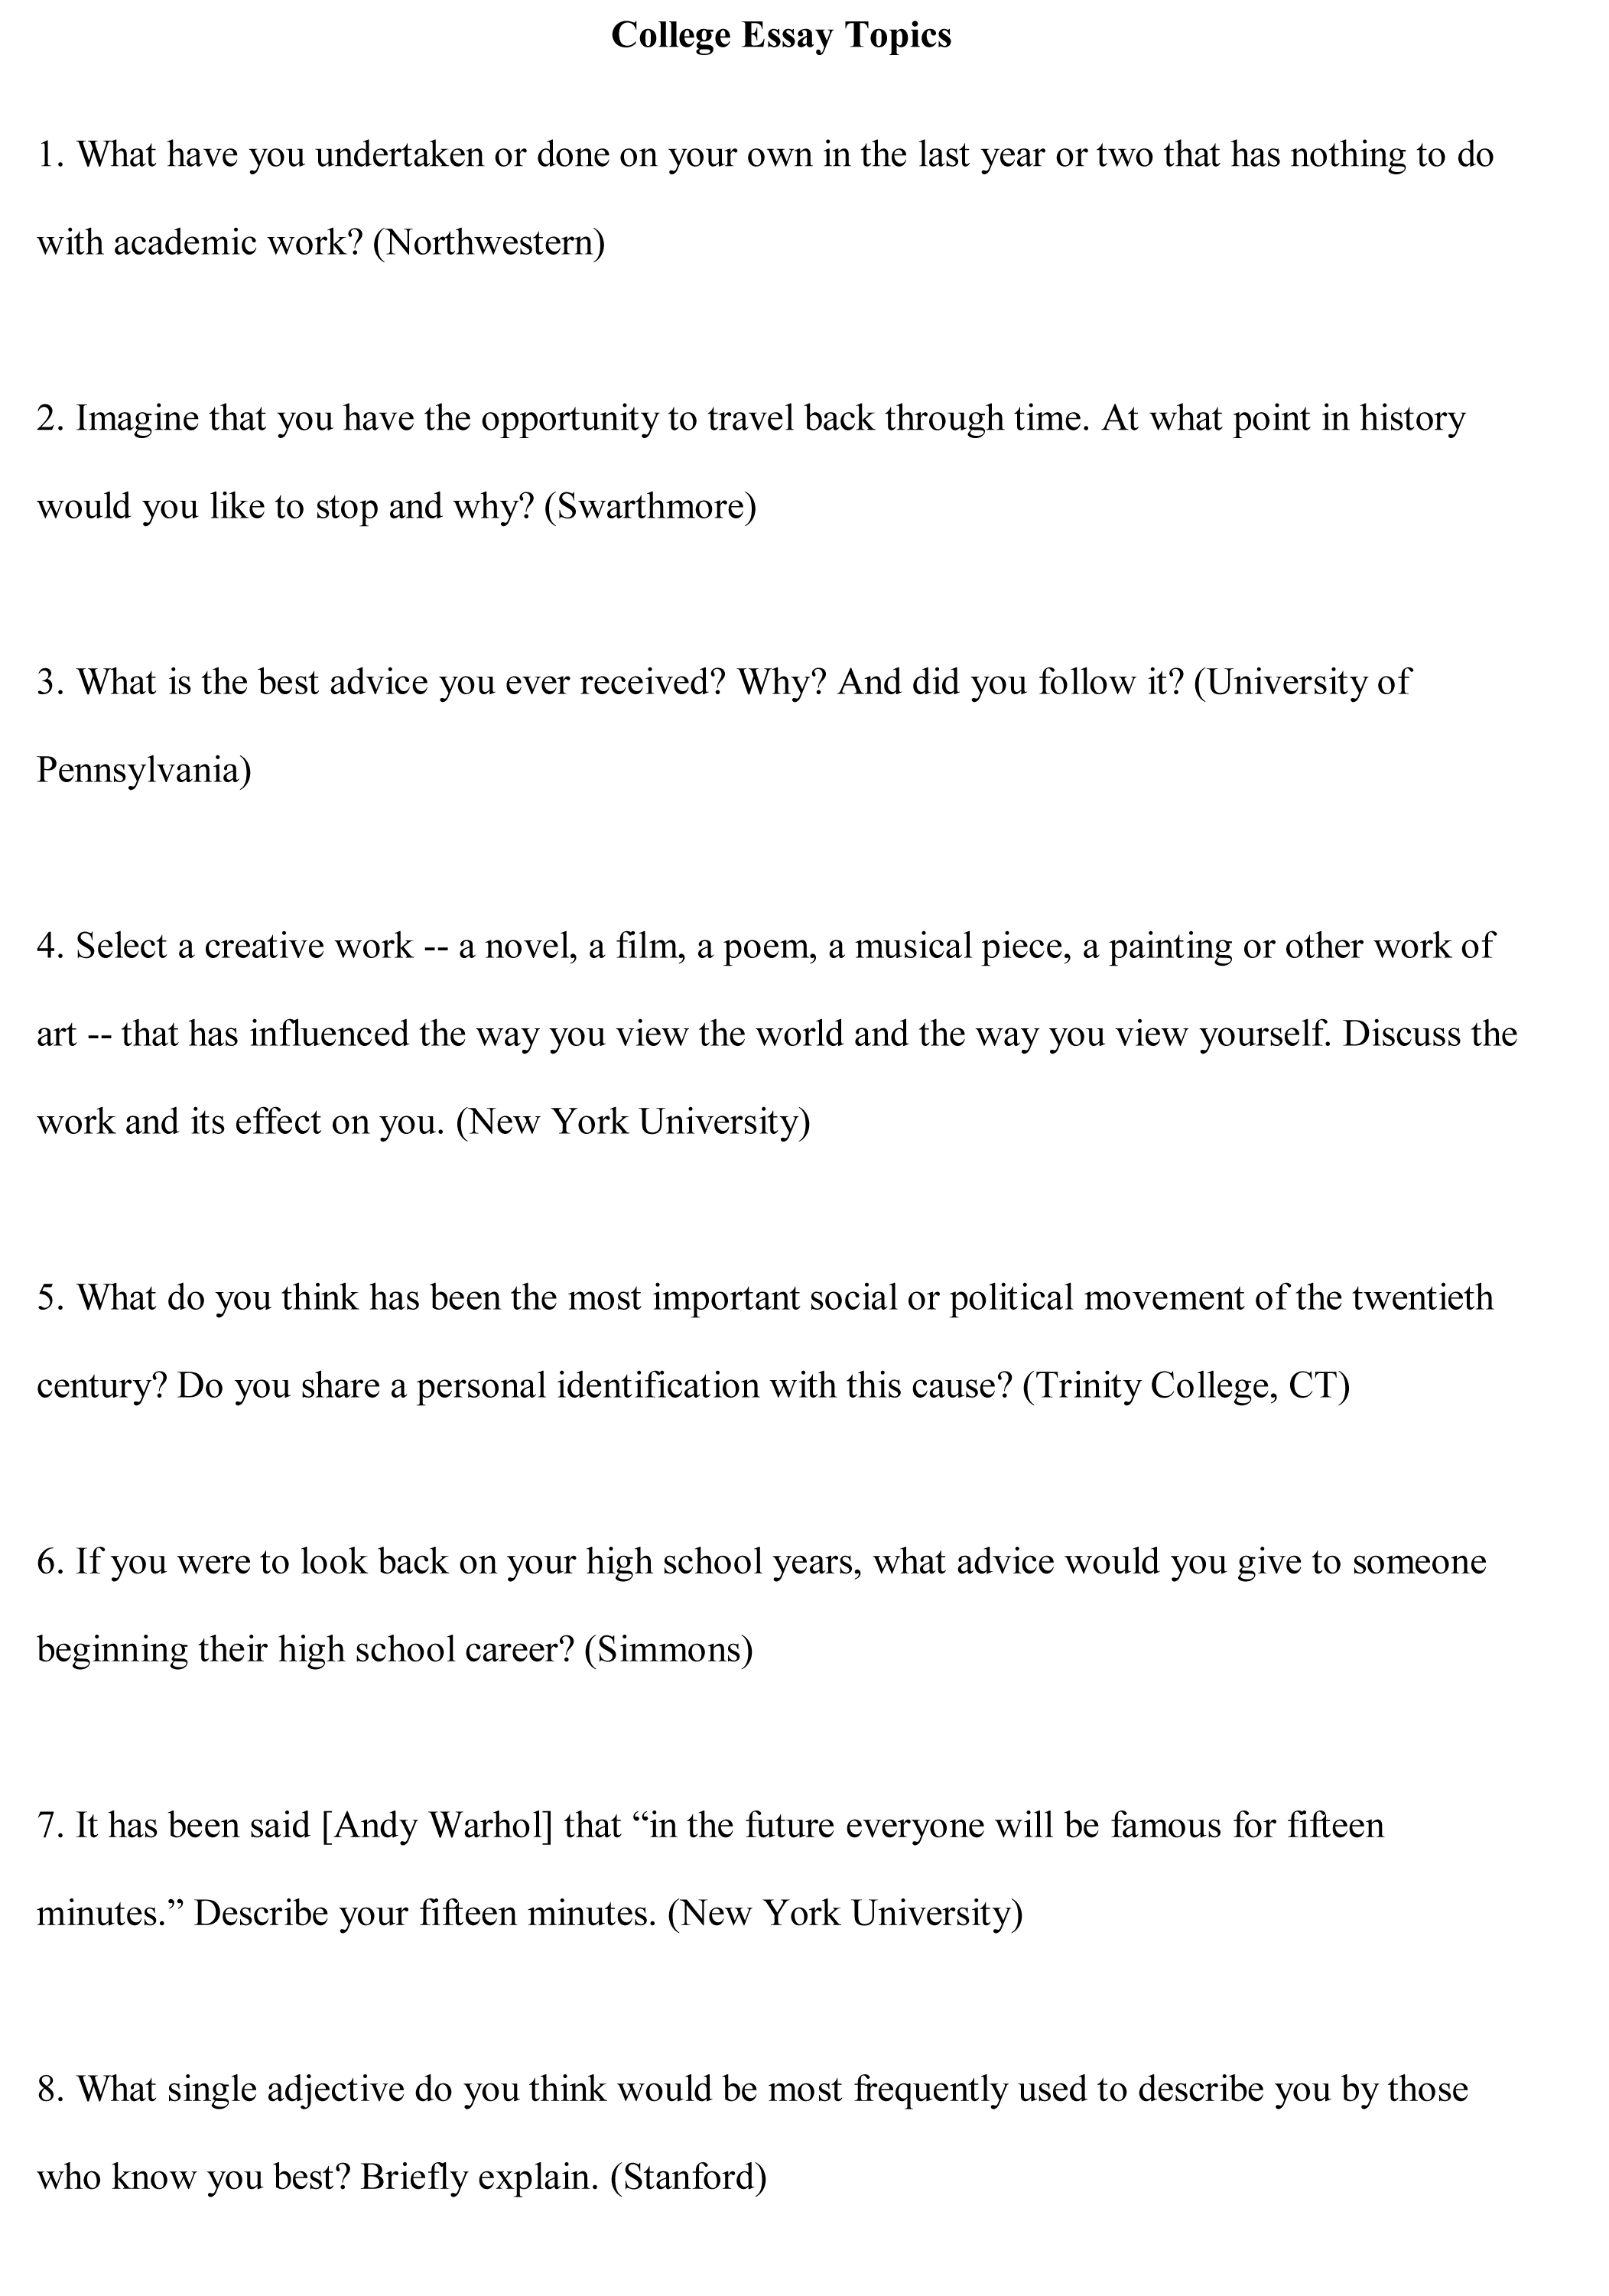 college essays online paper for college